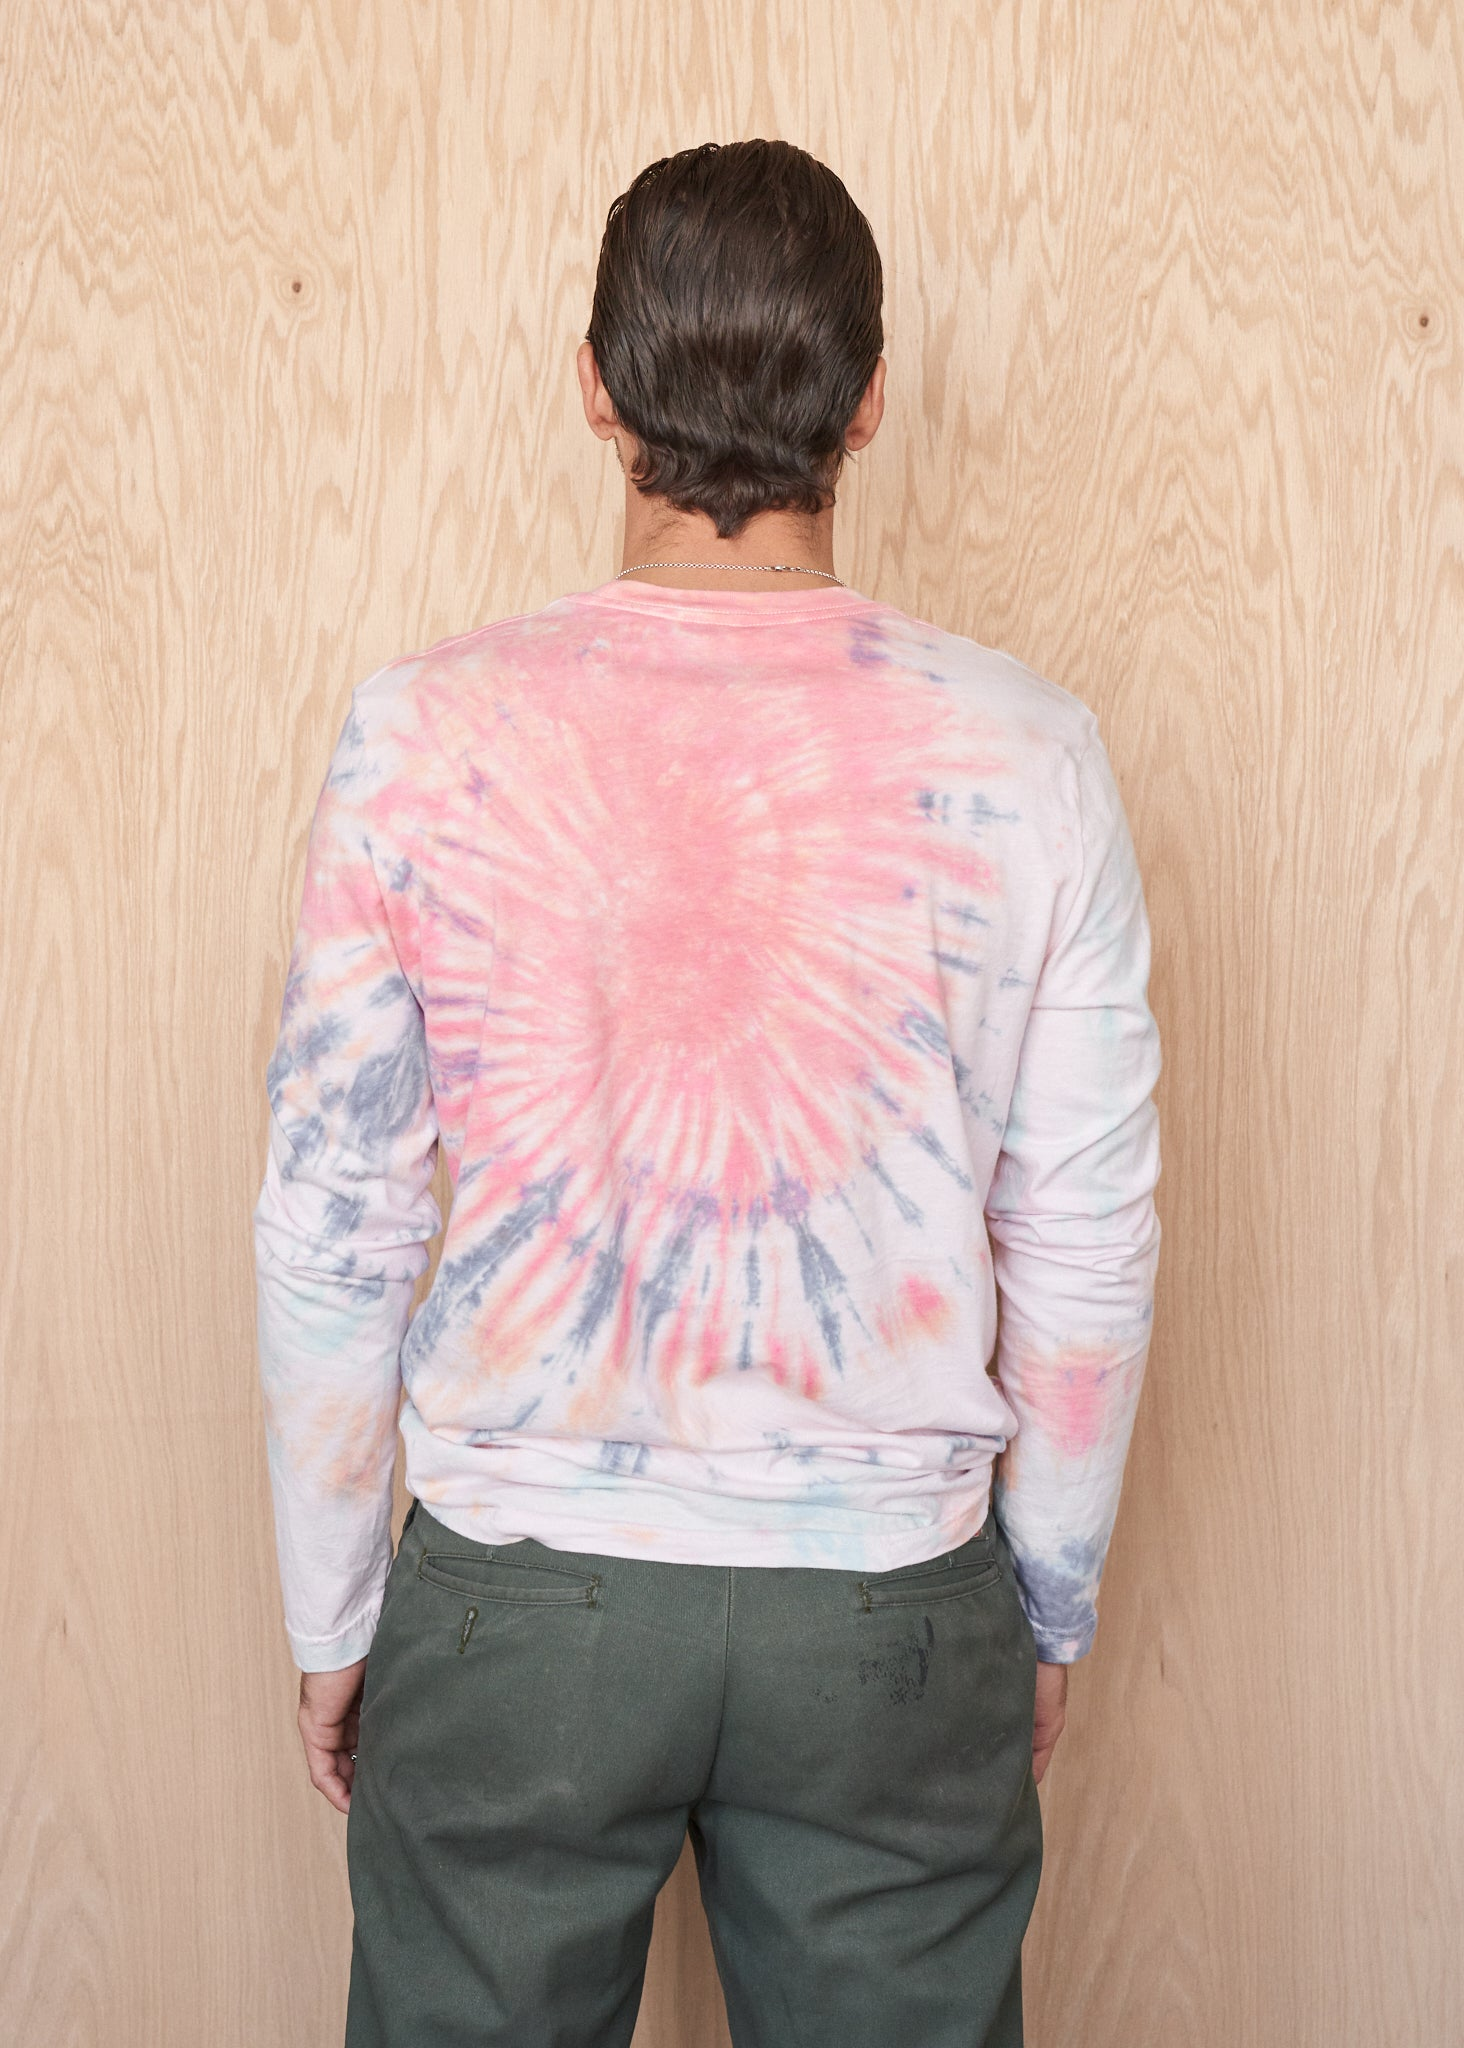 Cosmic Cowboy Tie-Dyed Long-Sleeve Tee Shirt - Men's Tee Shirt - Midnight Rider